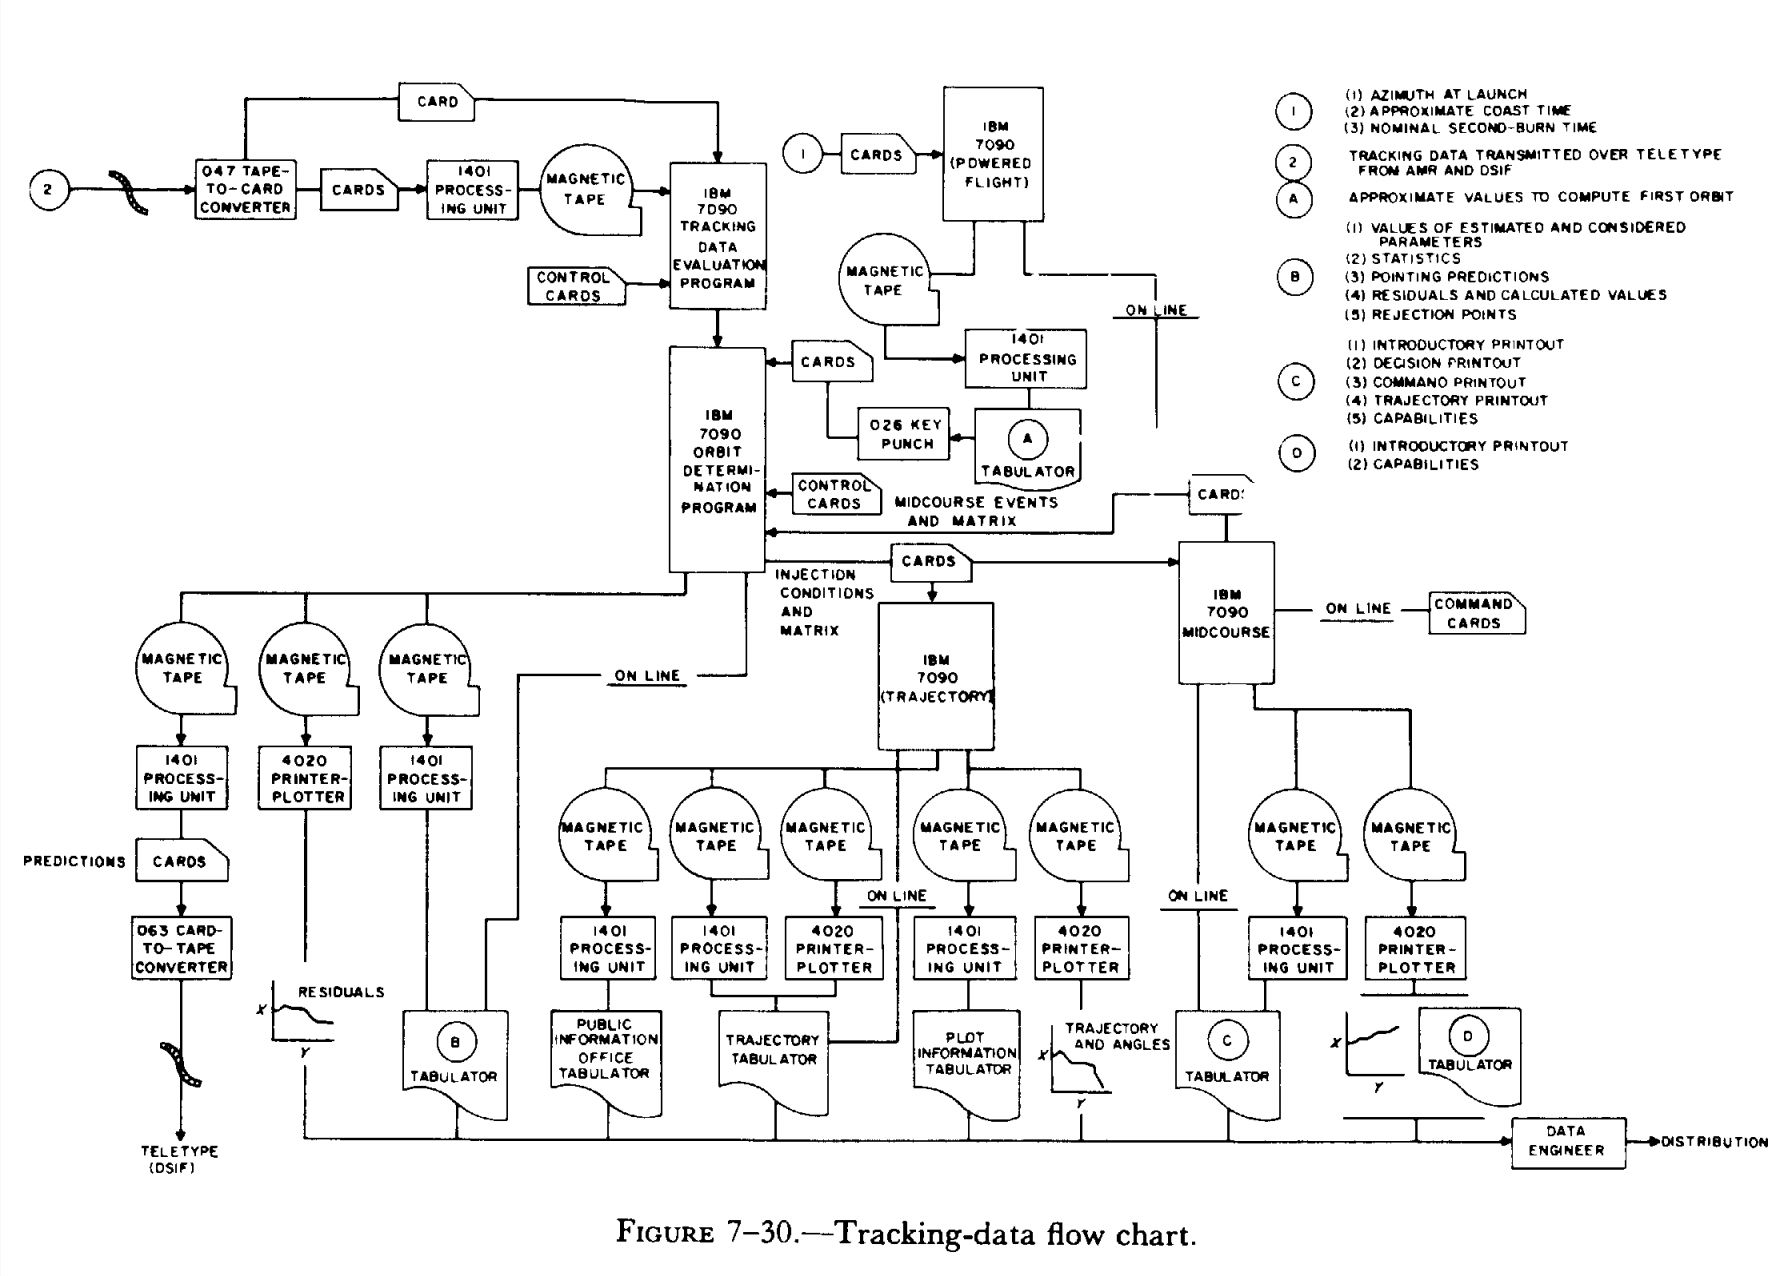 Program For Flow Charts: Tracking-data flow chart.jpg - Wikimedia Commons,Chart